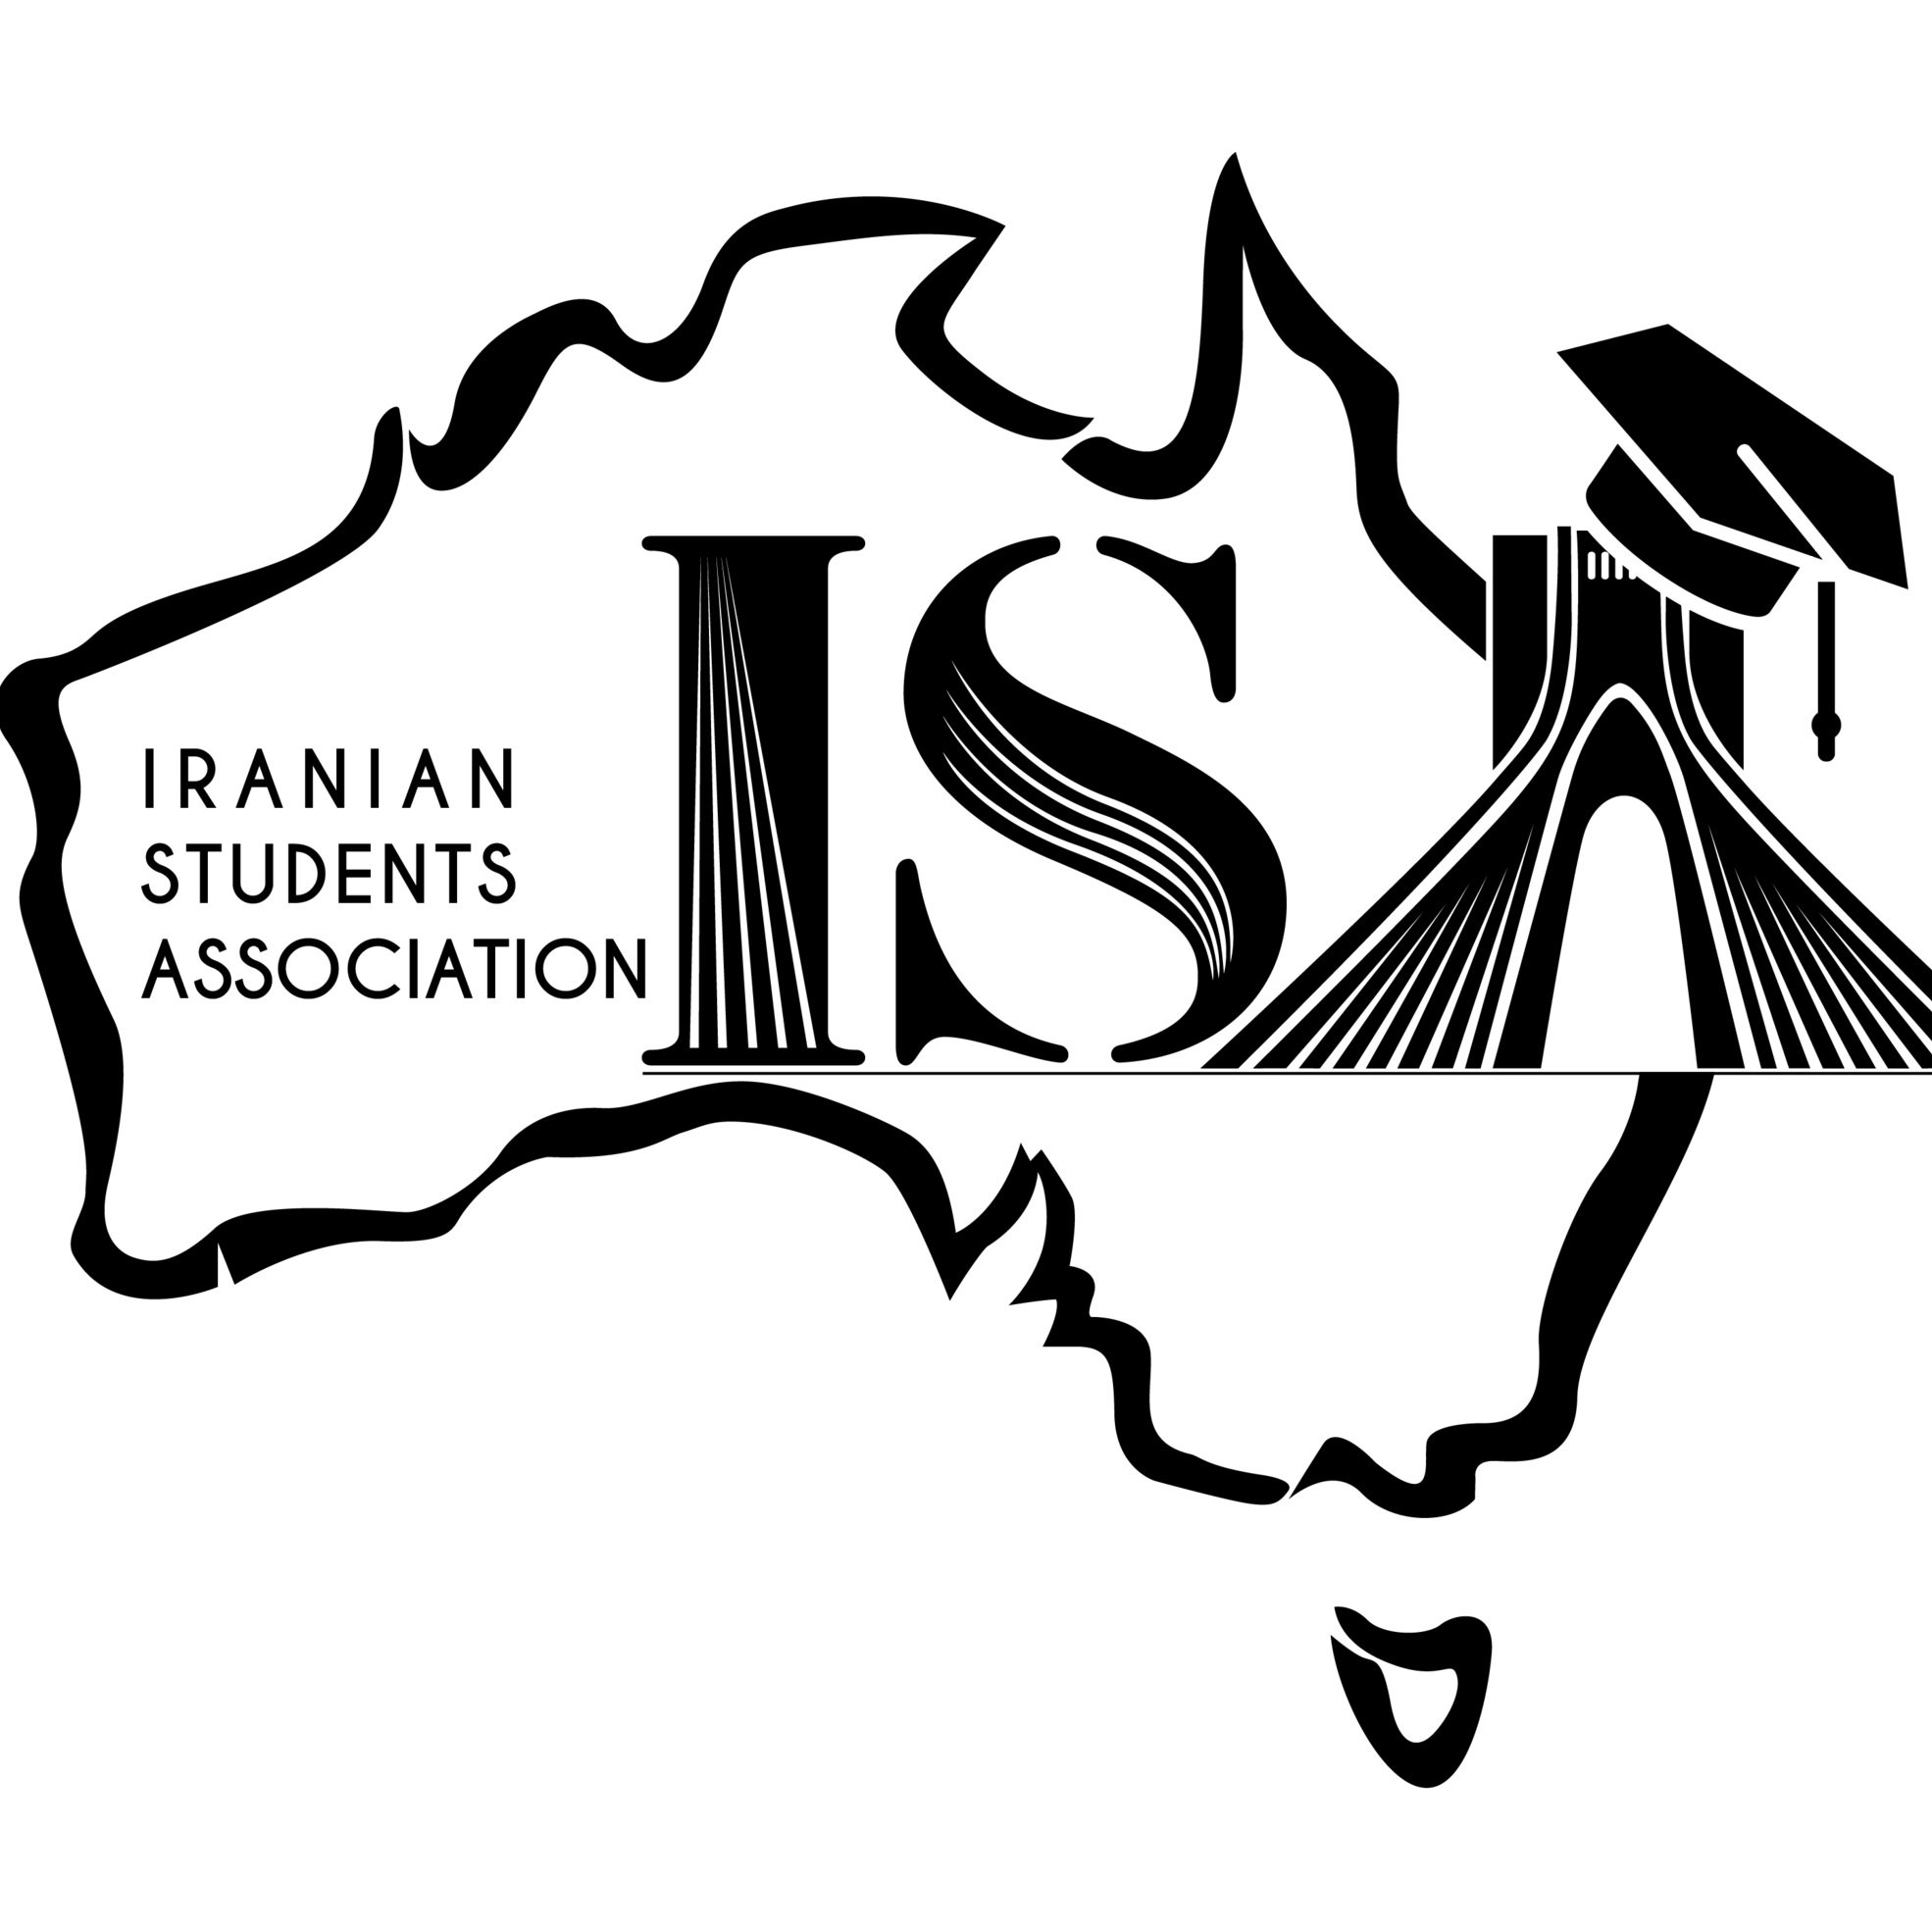 - We are a cultural association for Iranian students at UoN. We are interested in sharing Iranian culture with other nationalities whilst celebrating traditional events and introducing Persian culture and history to Australian society.Email: iranianstudents.uon@gmail.comTelegram channel: t.me/isaUoN